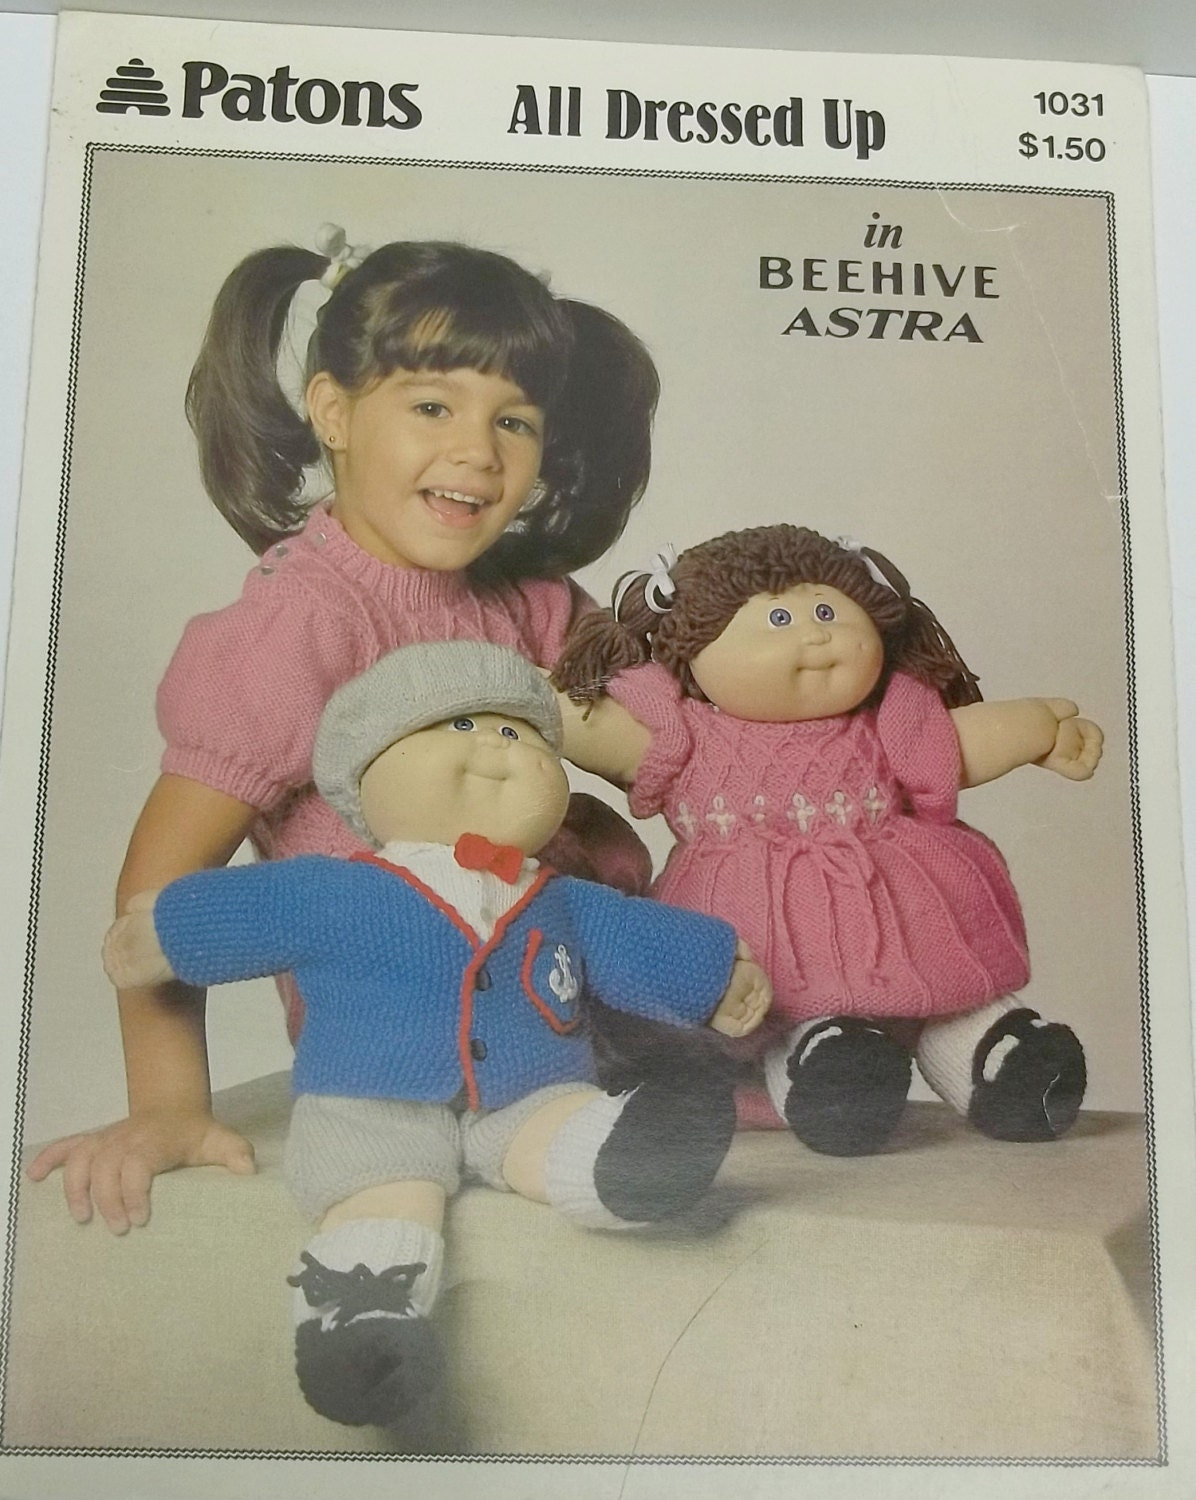 Knitting Patterns Cabbage Patch Dolls Free : Cabbage Patch Dolls Knitting Patterns Free